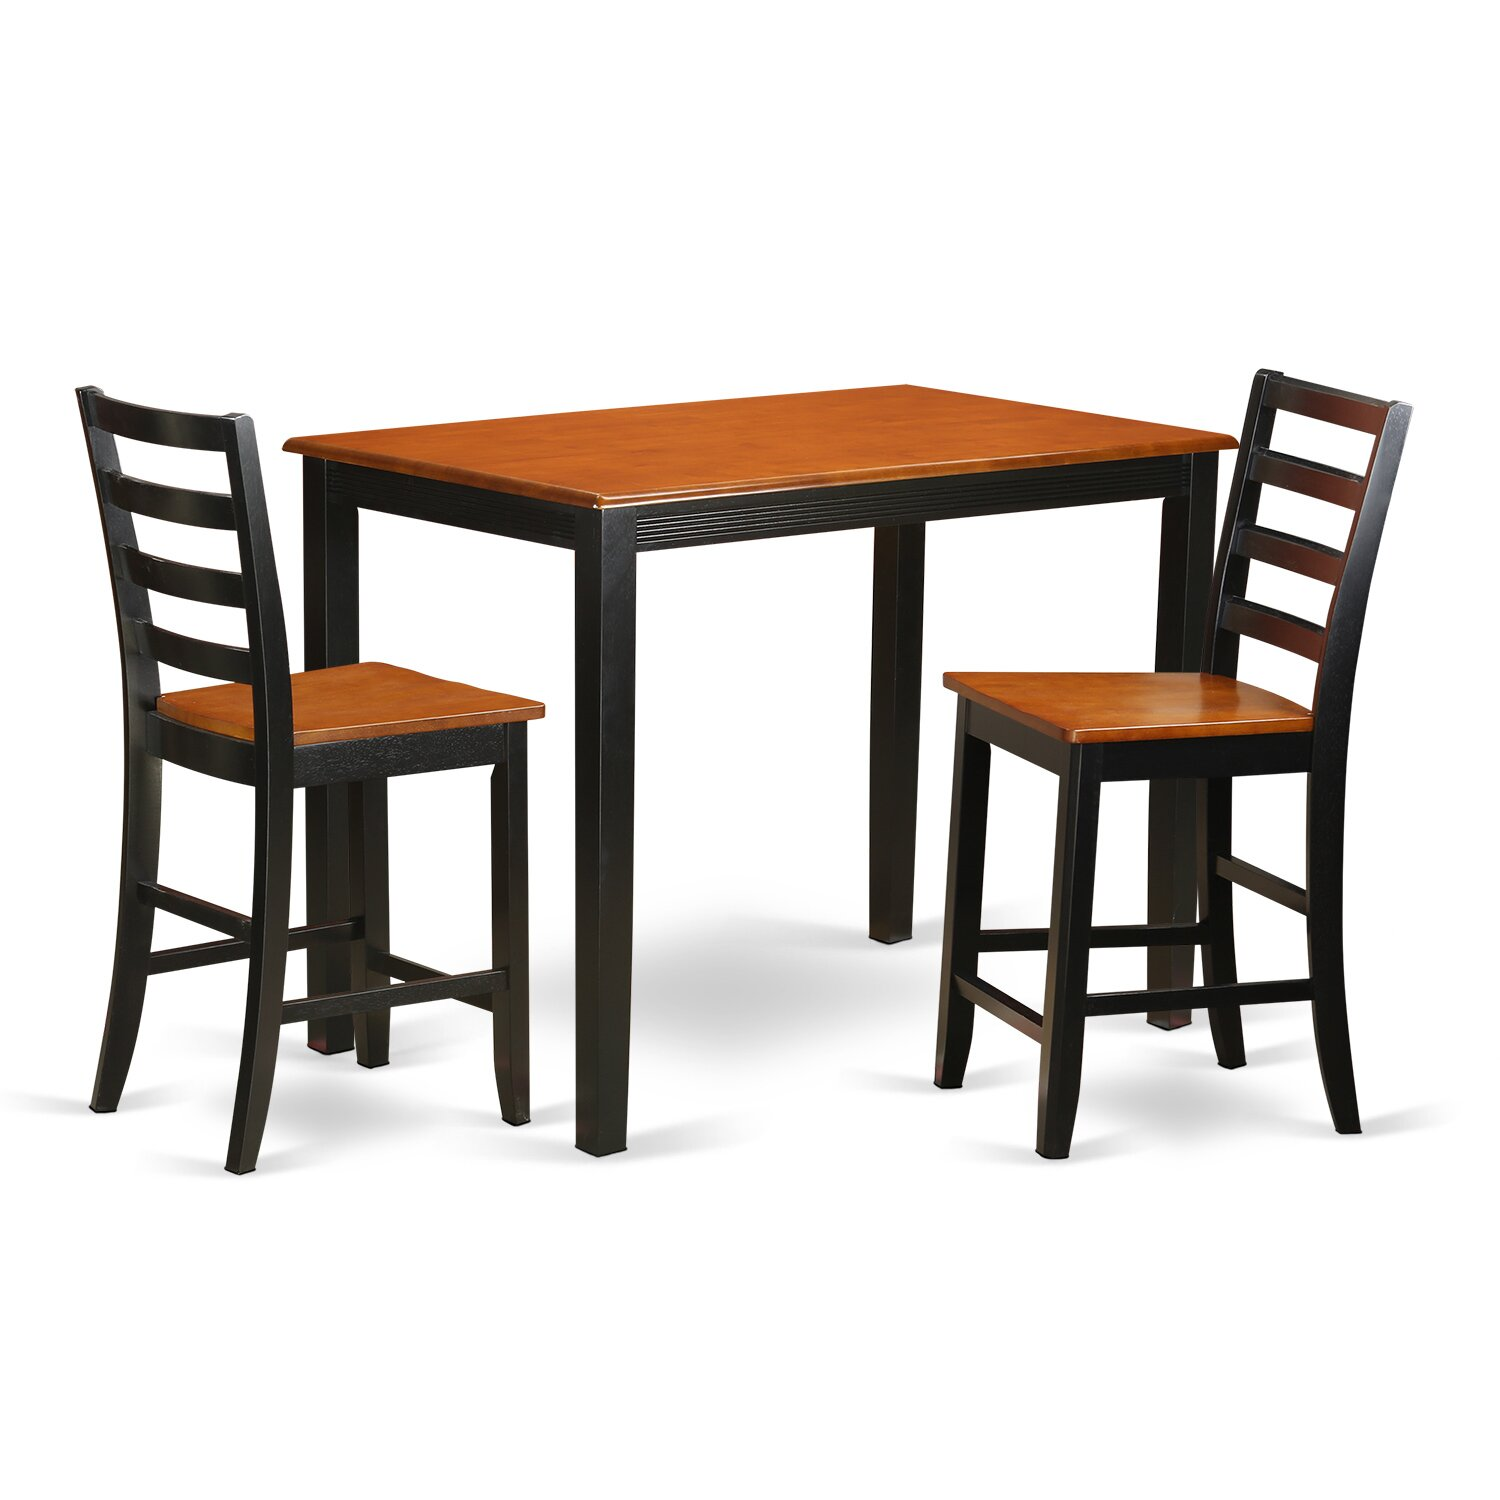 Wooden importers yarmouth 3 piece counter height pub table for Best wooden dining tables and chairs